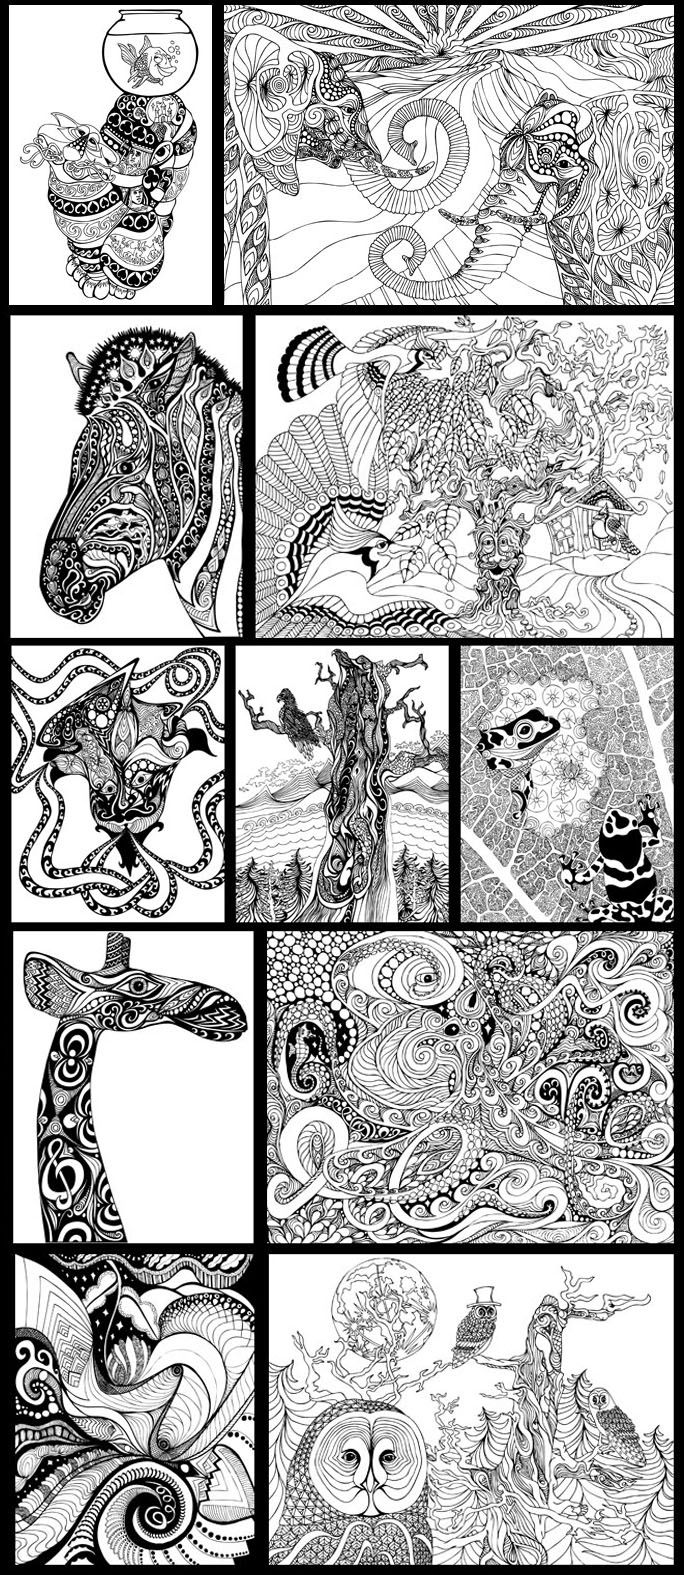 A Coloring Book for Big Kids - preview images